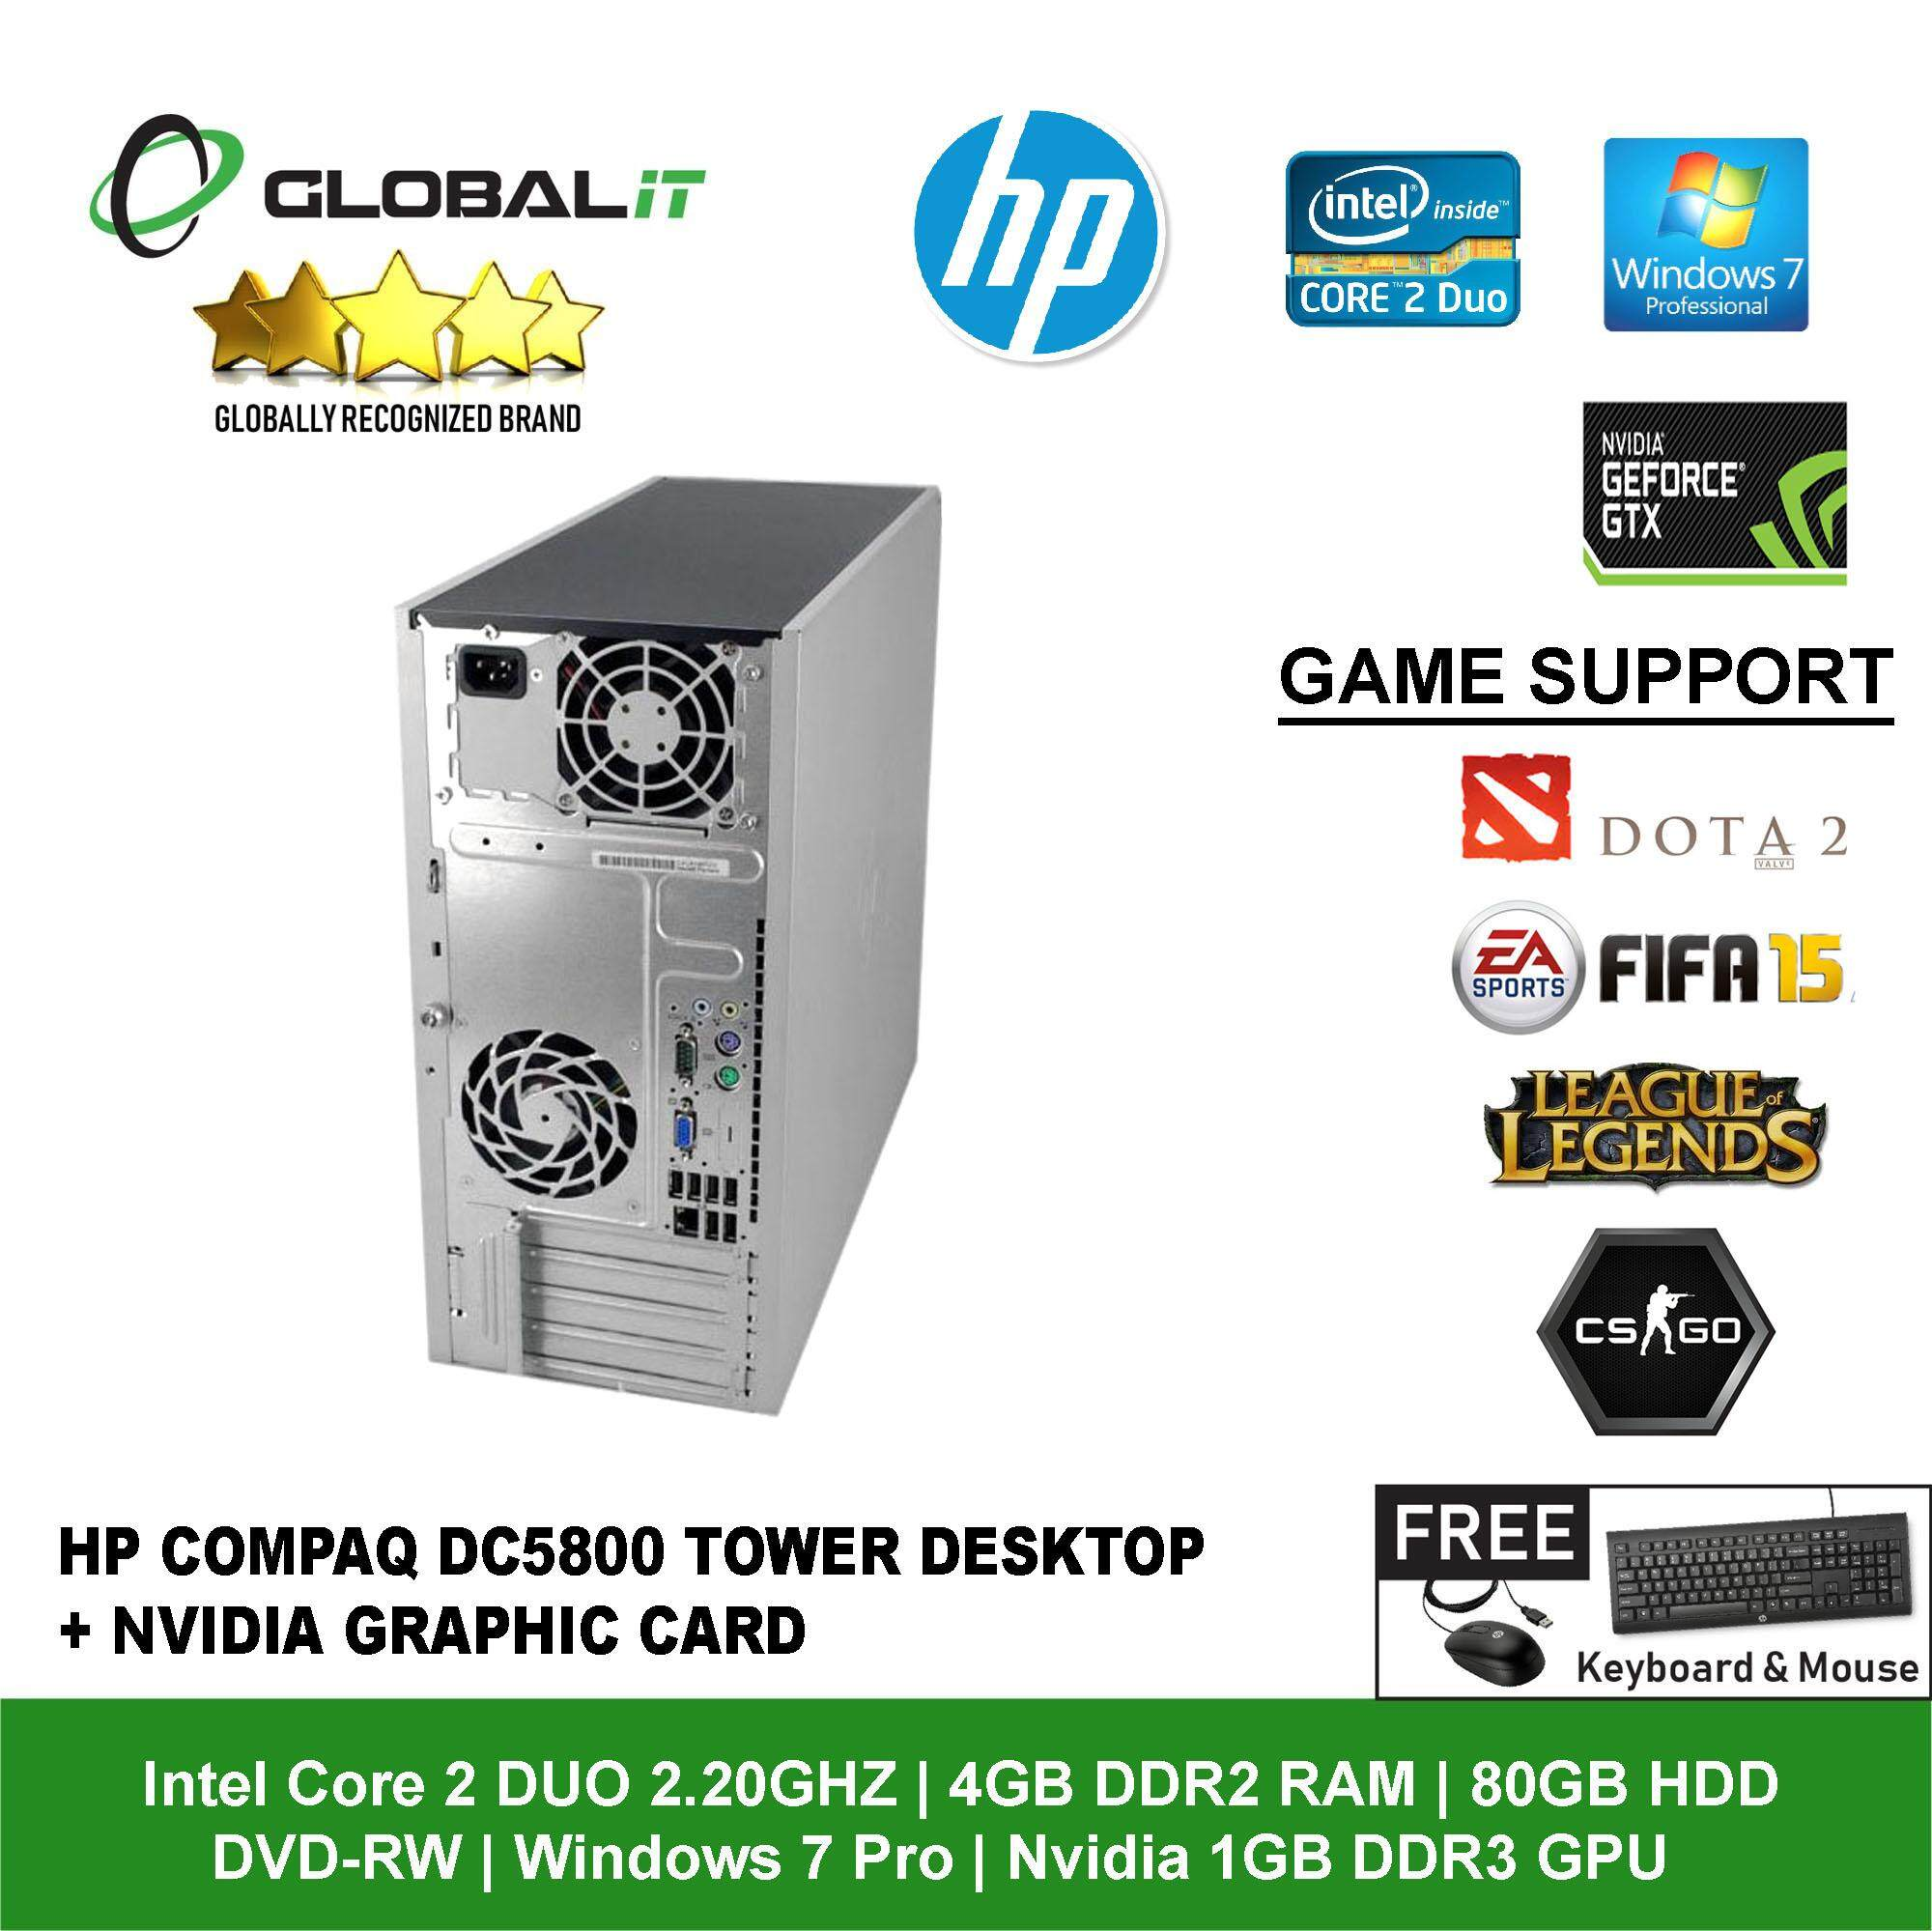 (Refurbished Desktop) HP Compaq DC5800 Tower / Intel Core 2 Duo / 4GB DDR2  Ram / 80GB HDD / DVD-RW / Windows 7 Professional / Gaming